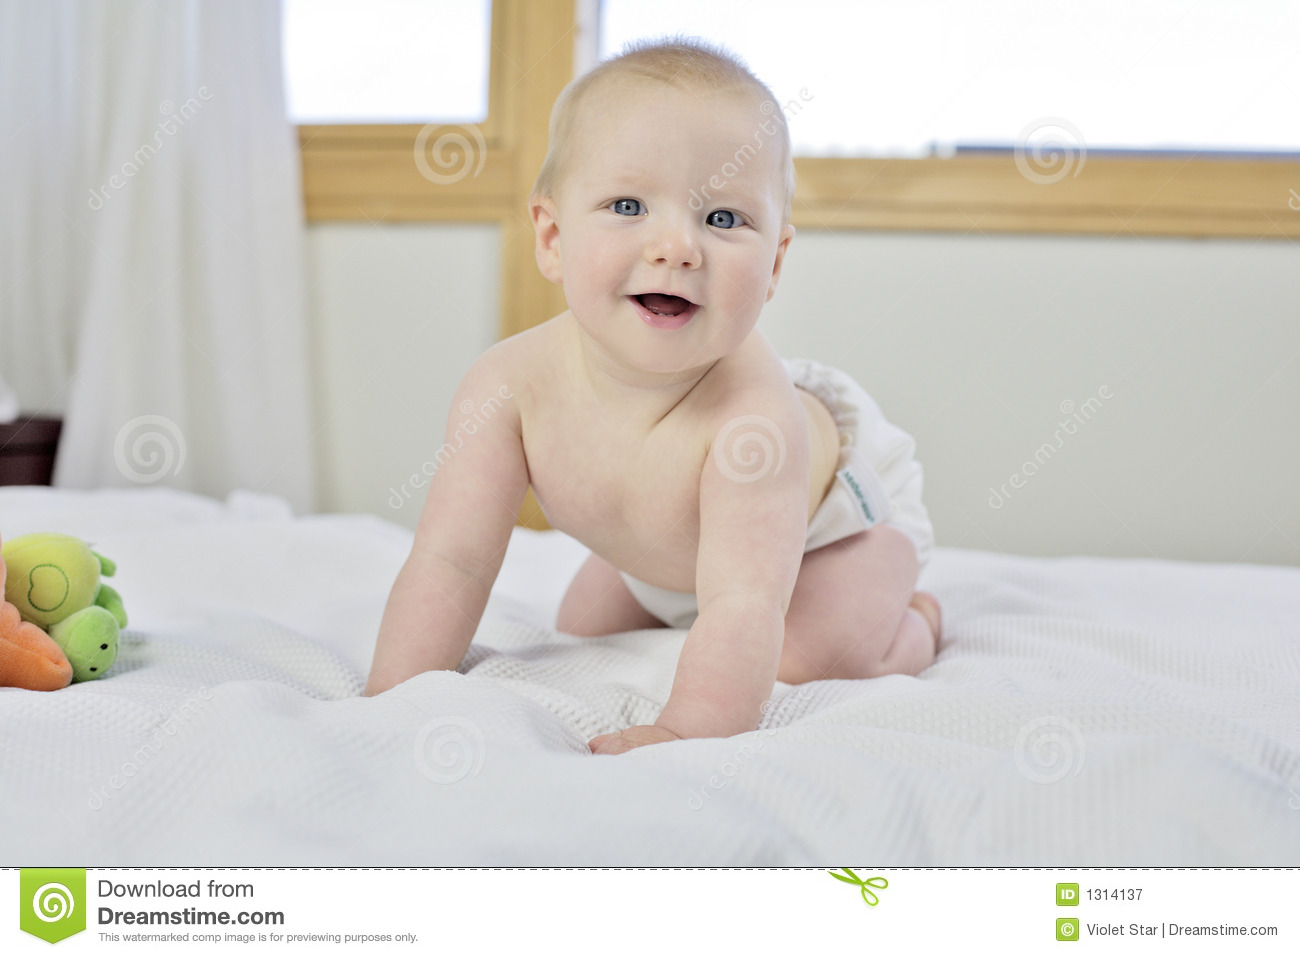 Month old baby boy starting to think about crawling with 1st teeth